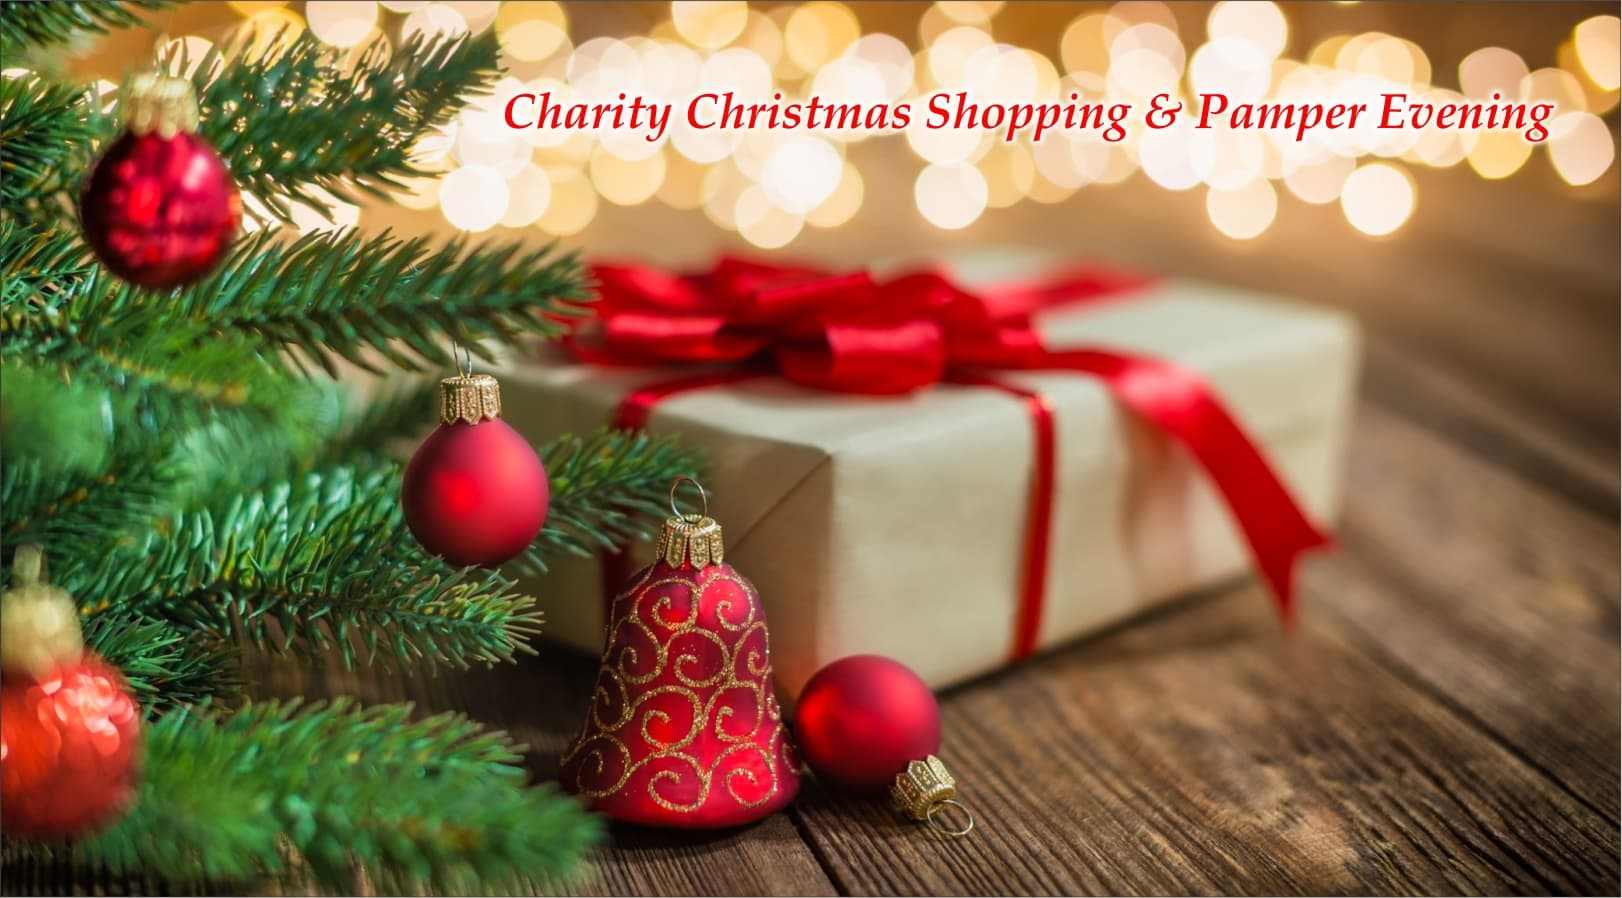 Charity Christmas Shopping & Pamper Evening features image